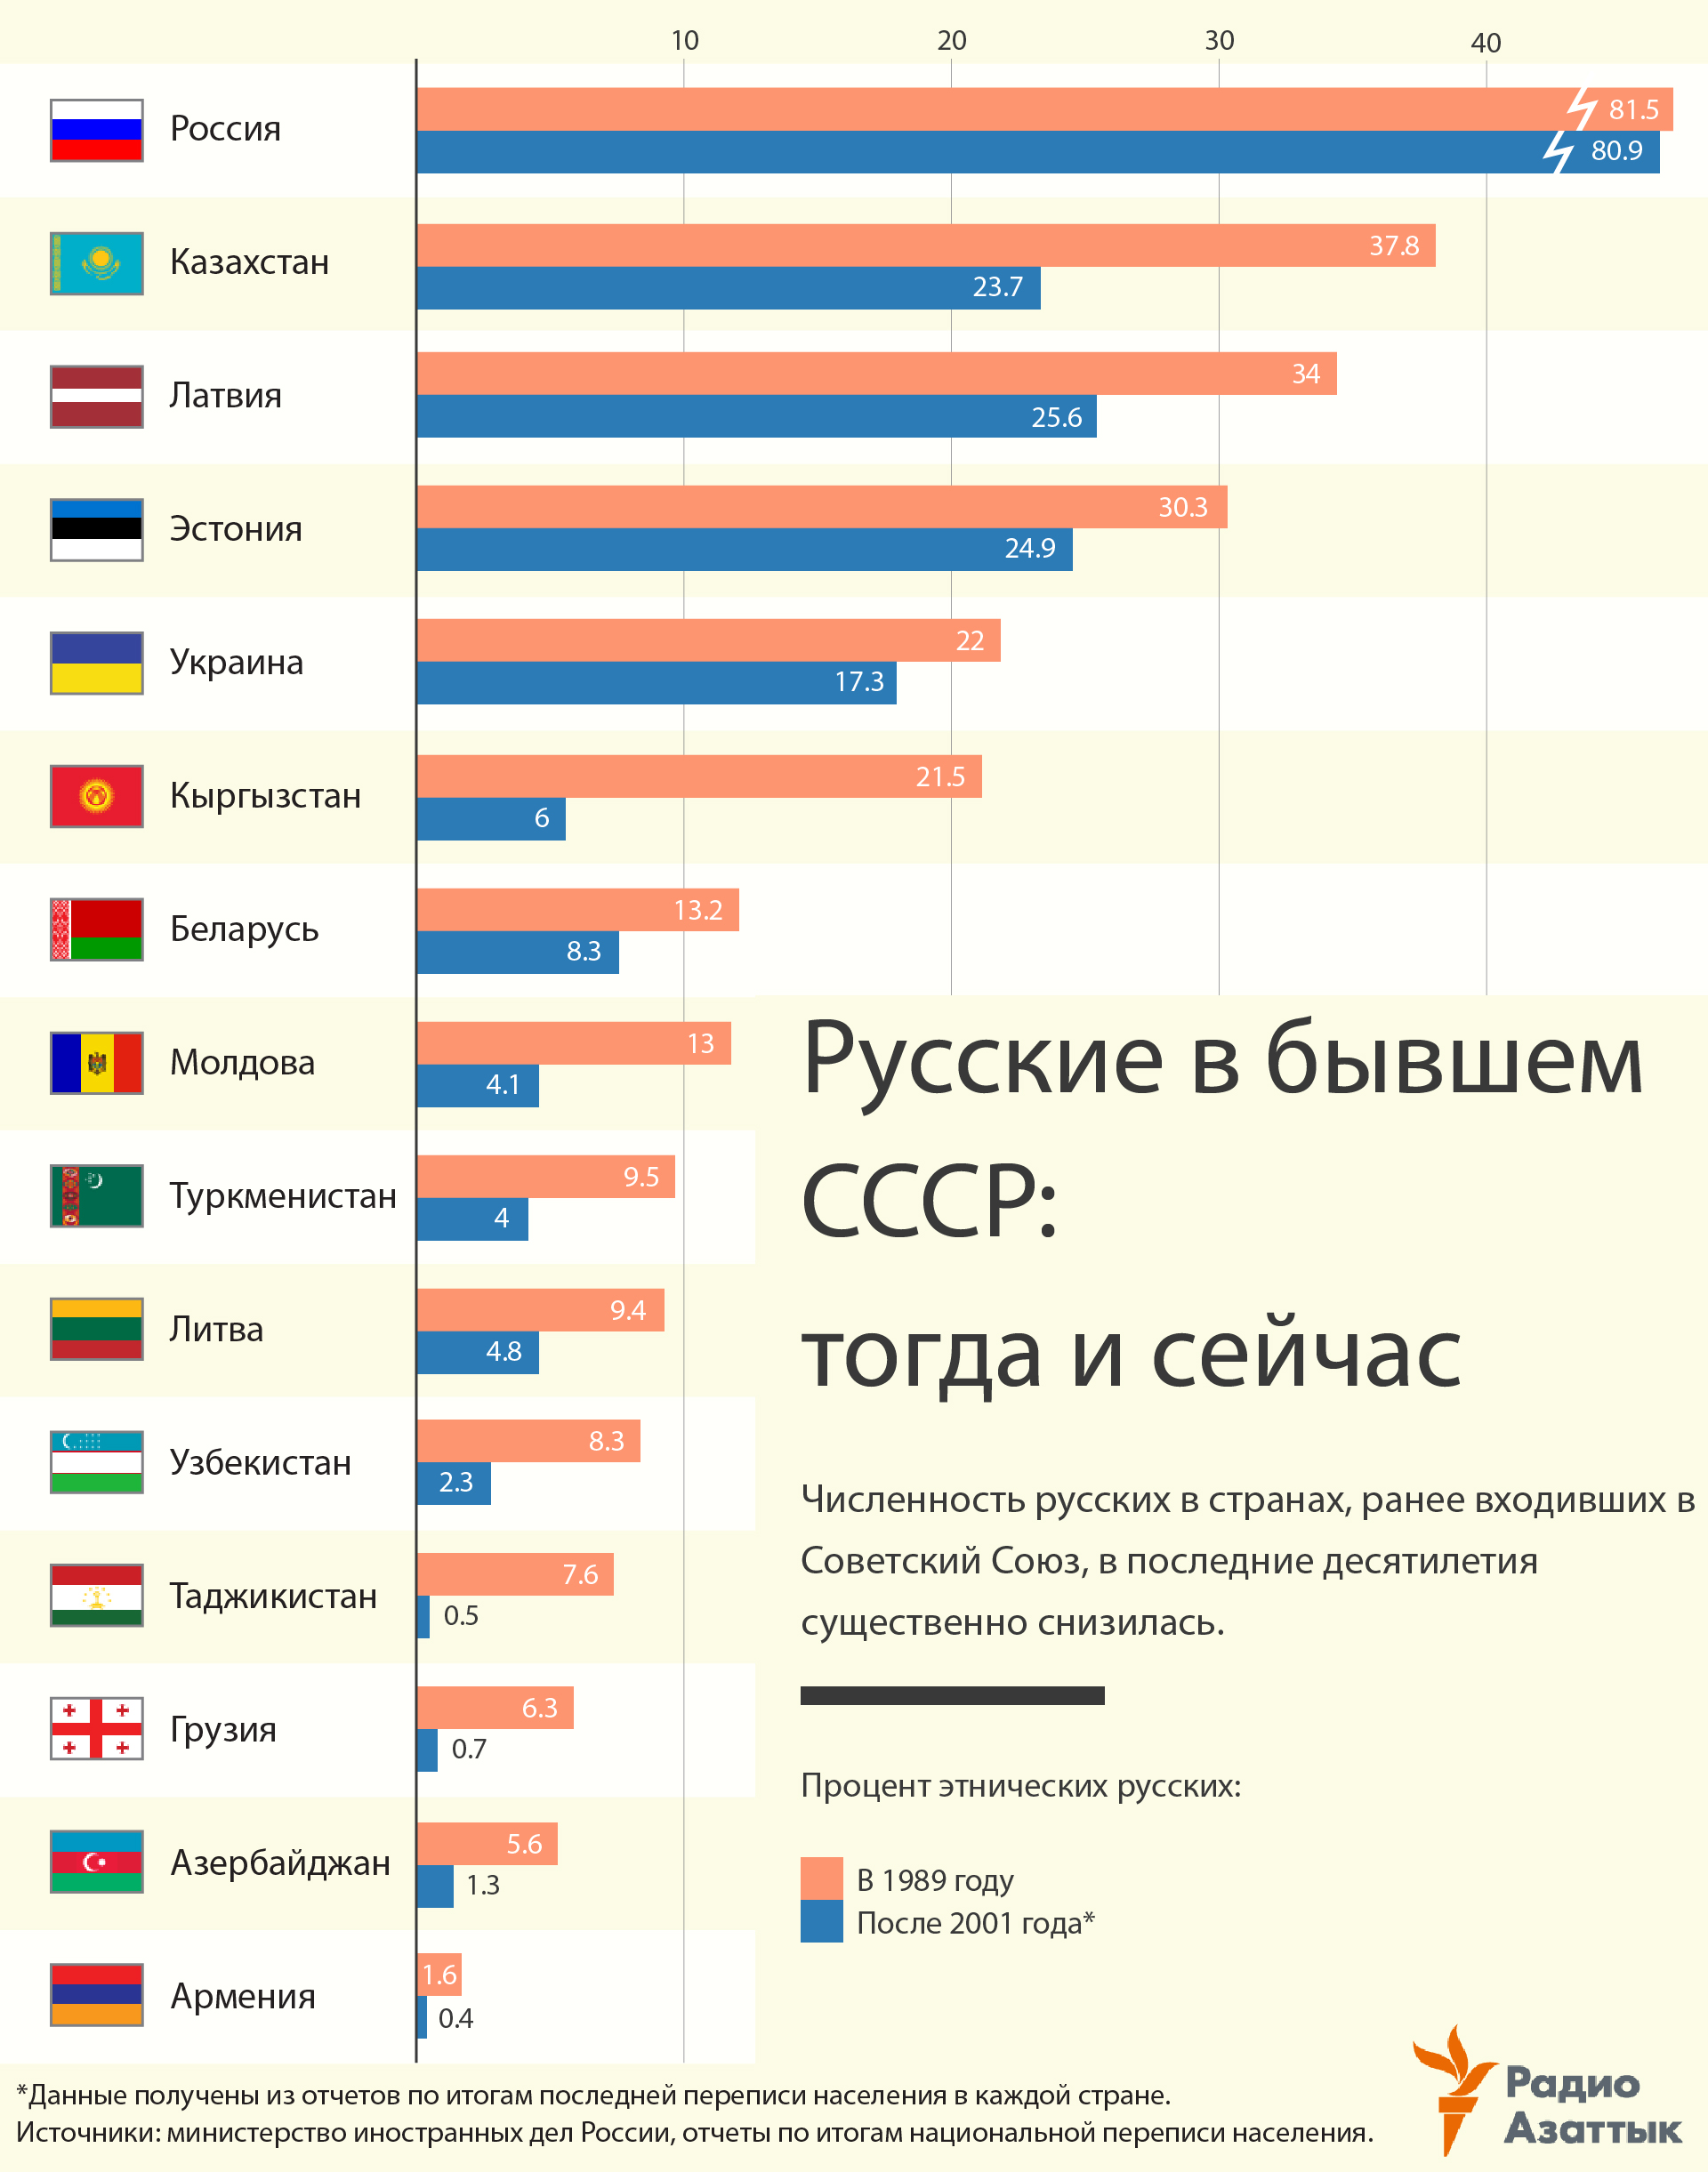 infographic about russians